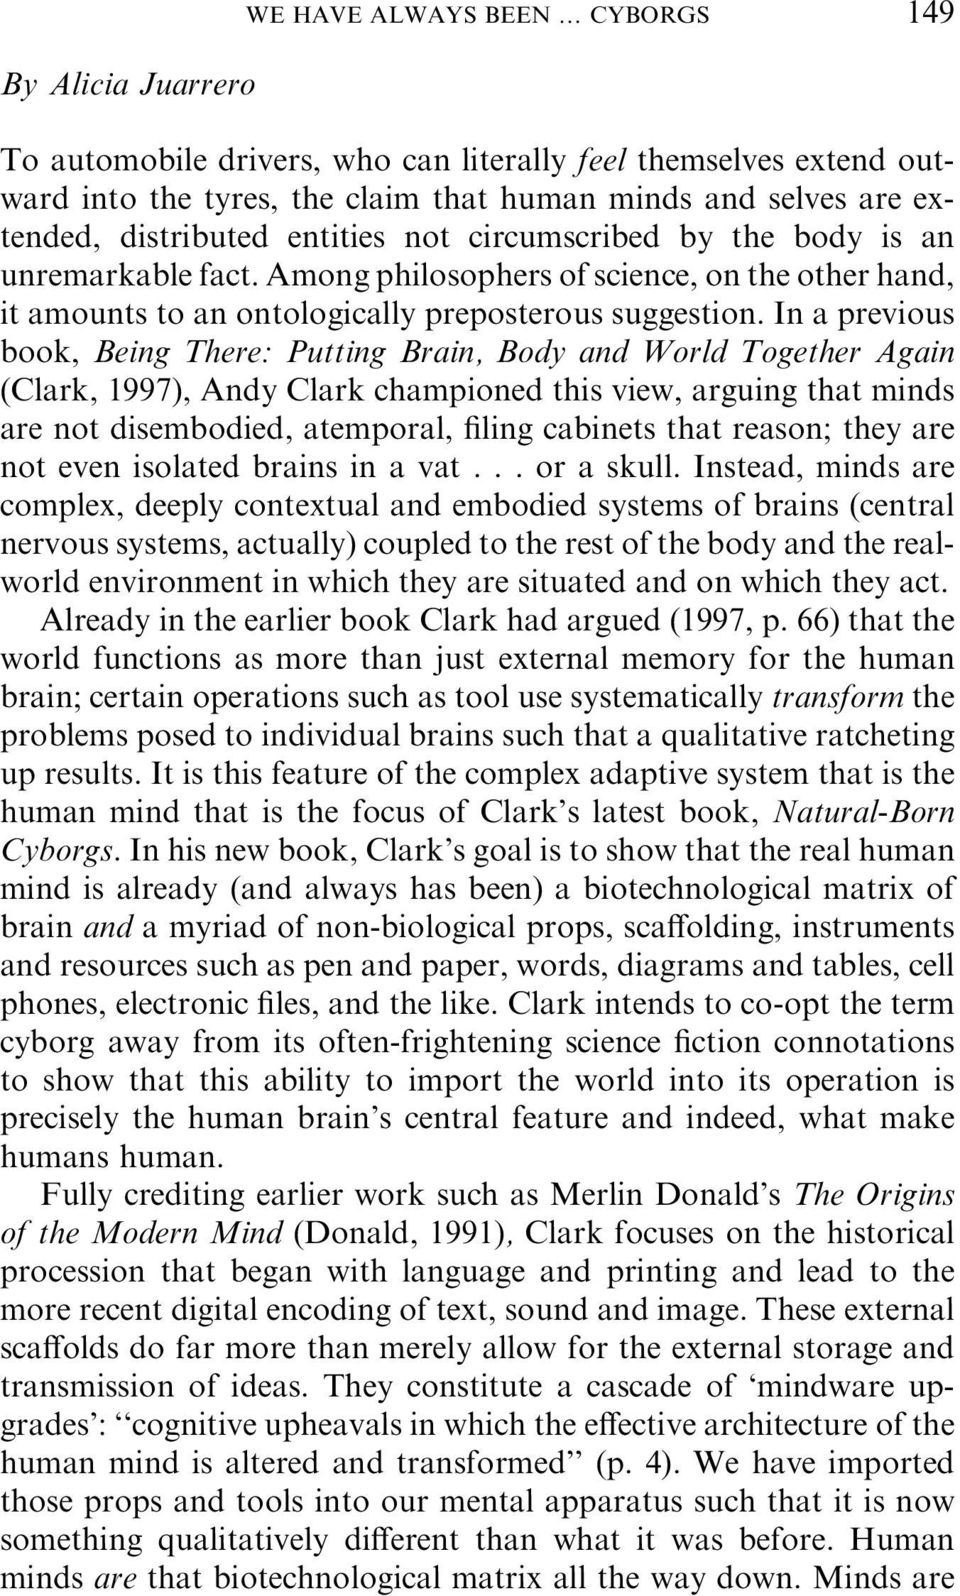 In a previous book, Being There: Putting Brain, Body and World Together Again (Clark, 1997), Andy Clark championed this view, arguing that minds are not disembodied, atemporal, filing cabinets that